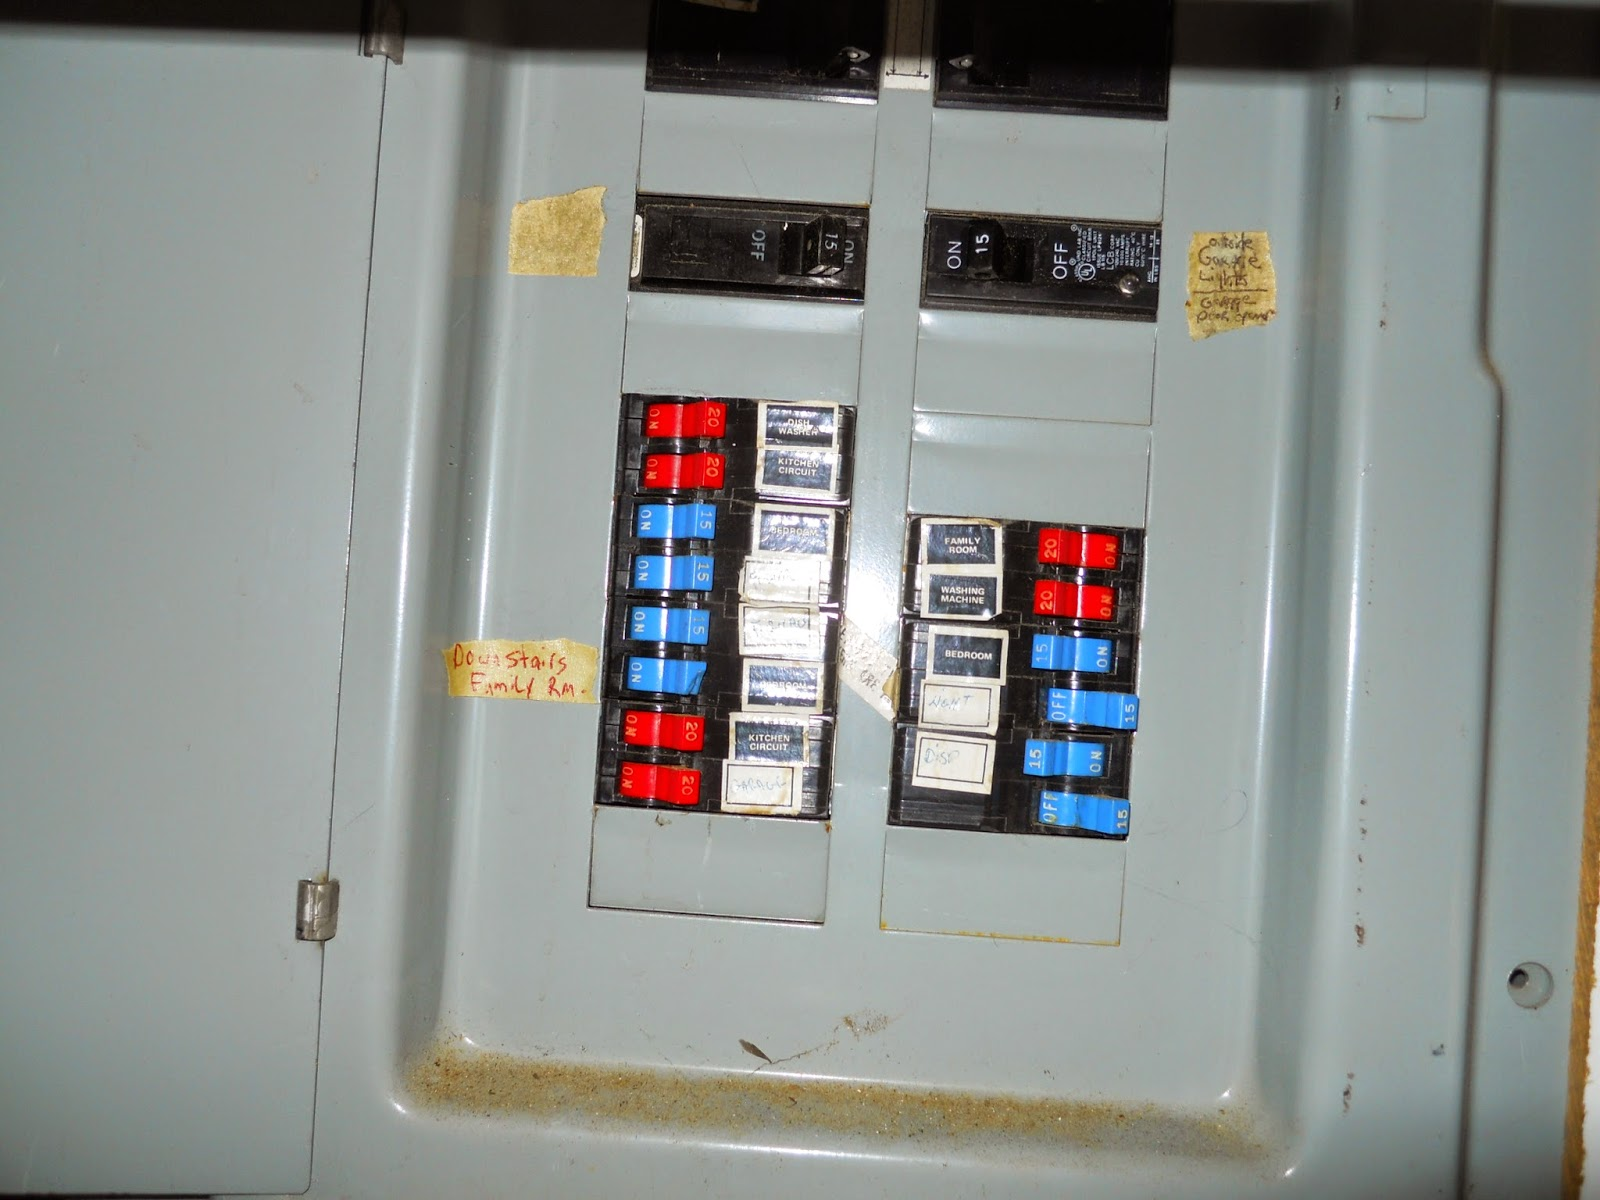 hight resolution of the result the breakers may not trip and the panel can become susceptible to catching fire